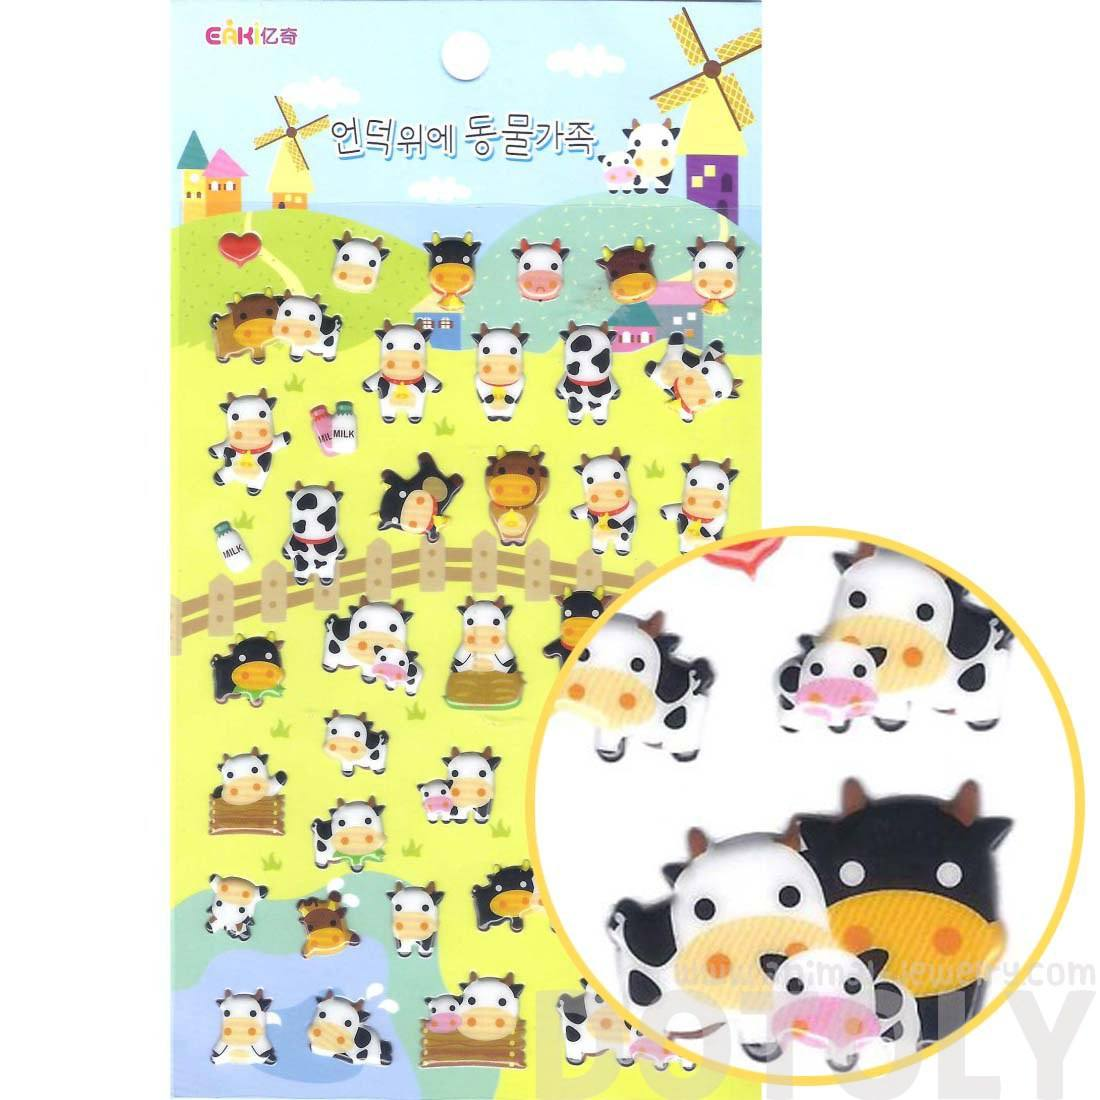 Cows Shaped Farm Animal Themed Puffy Sticker Seals Stationery Supplies